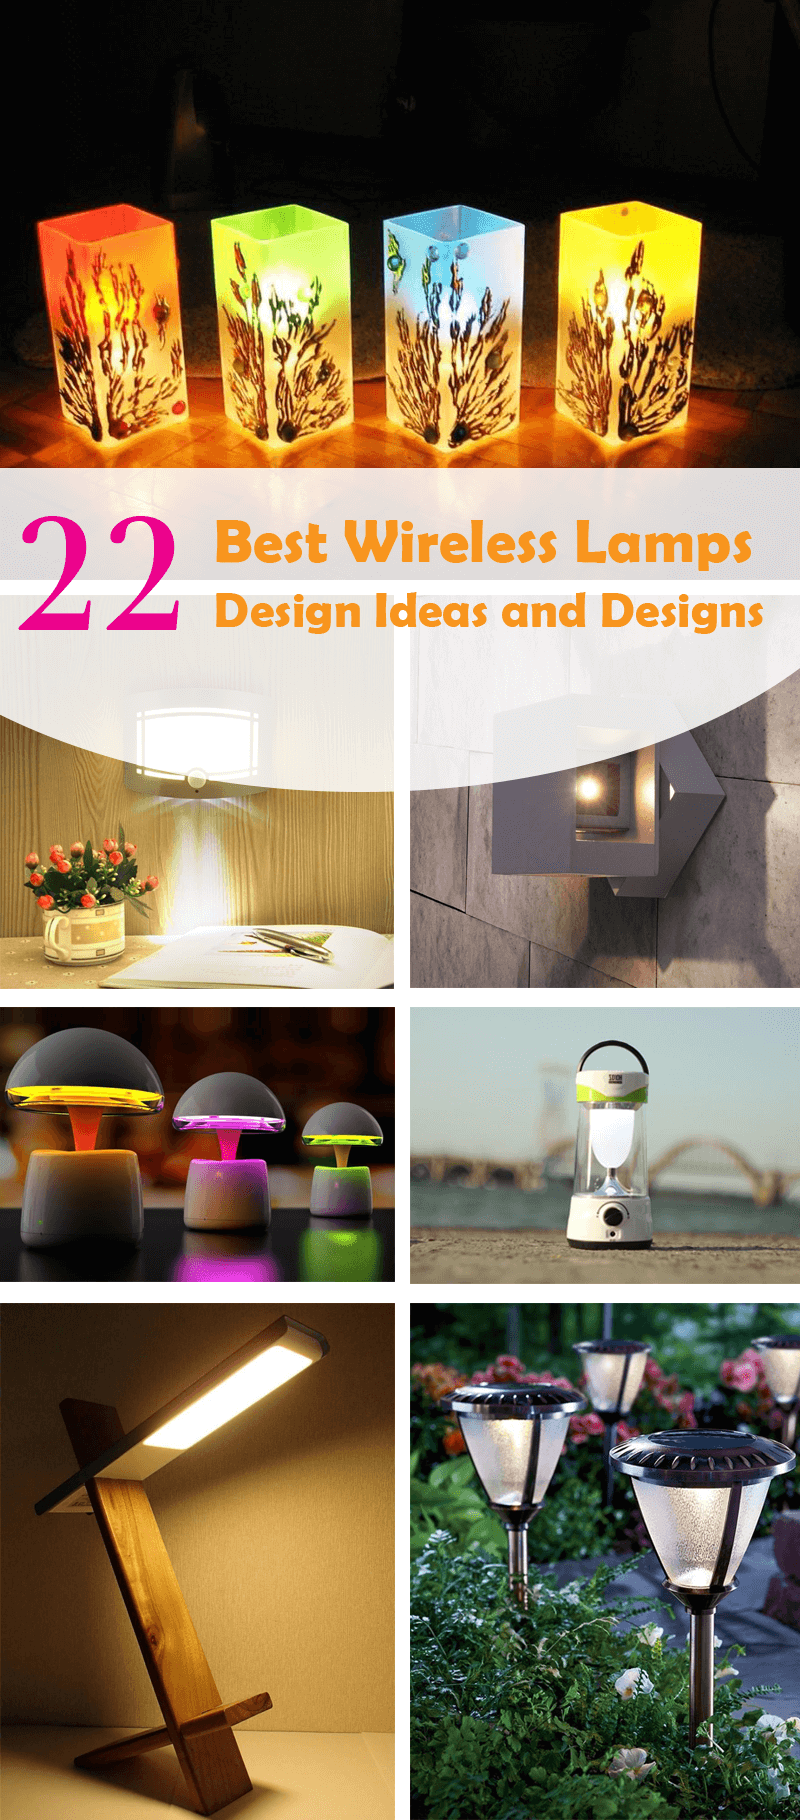 best wireless lamps ideas and designs